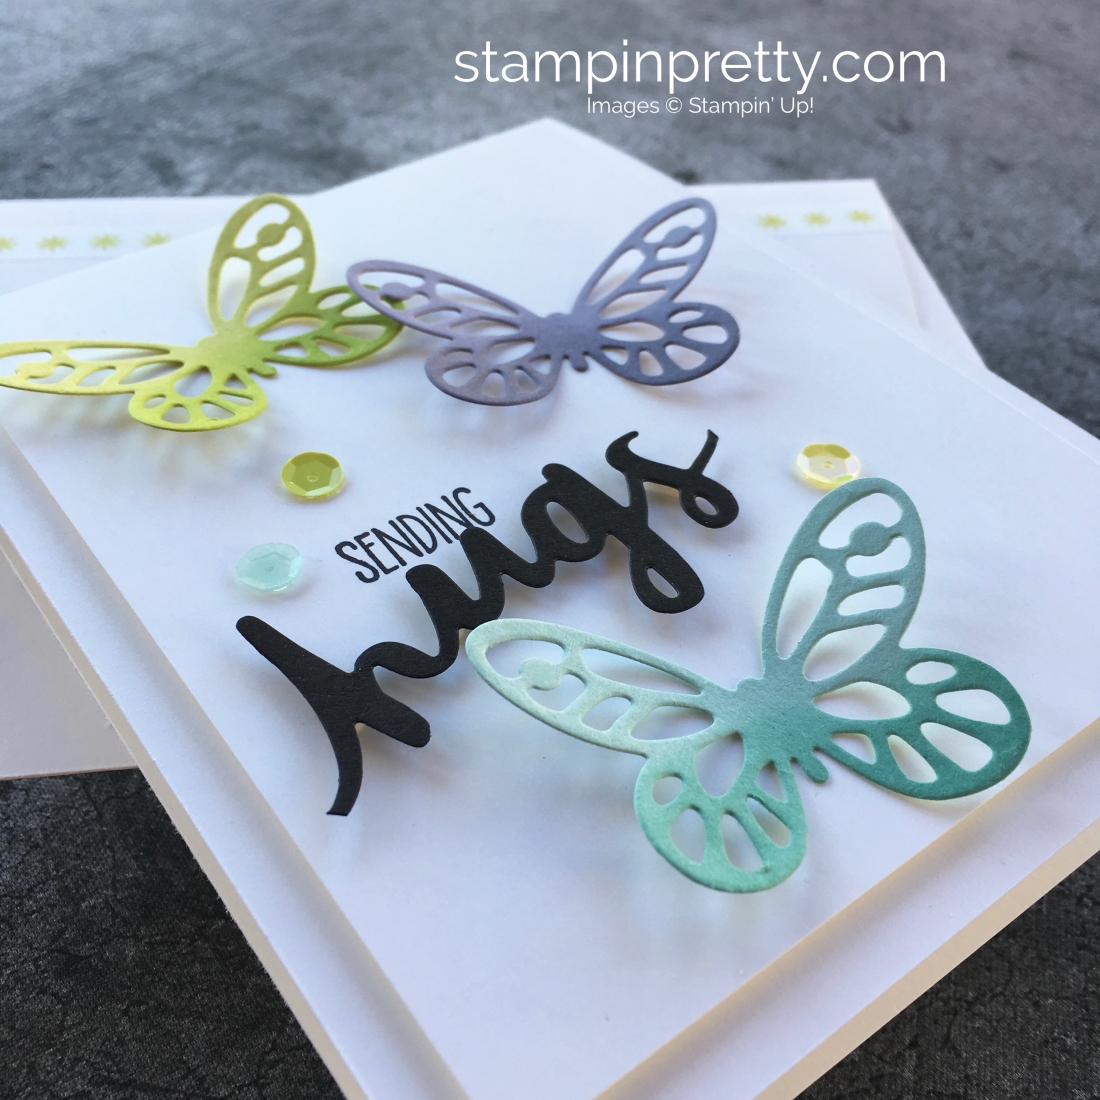 bd1d31952 Sympathy Card Idea Using Stampin Up Bold Butterfly Dies - Mary Fish  StampinUp